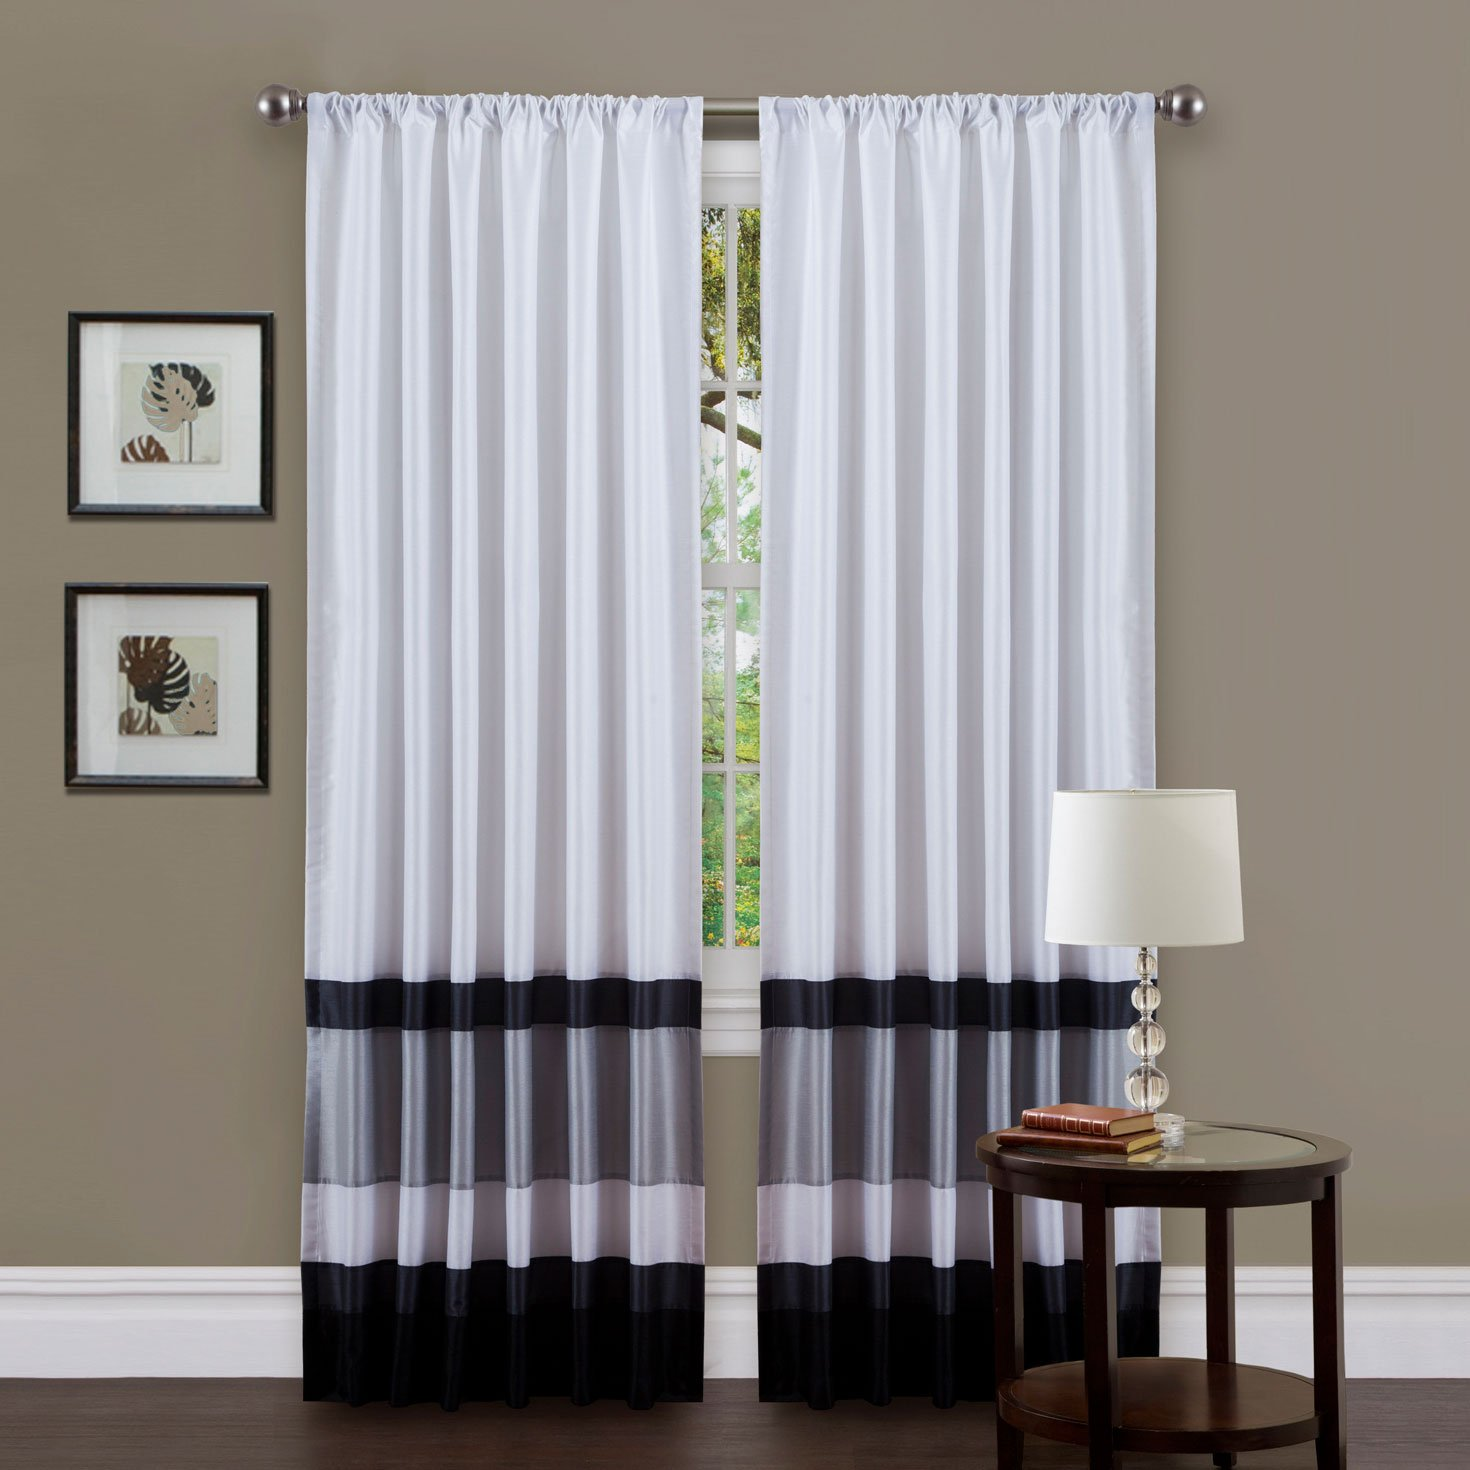 Triangle Home Fashions 19334 Lush Decor 54-inch x 84-Inch Iman Curtain Panel, White/Black